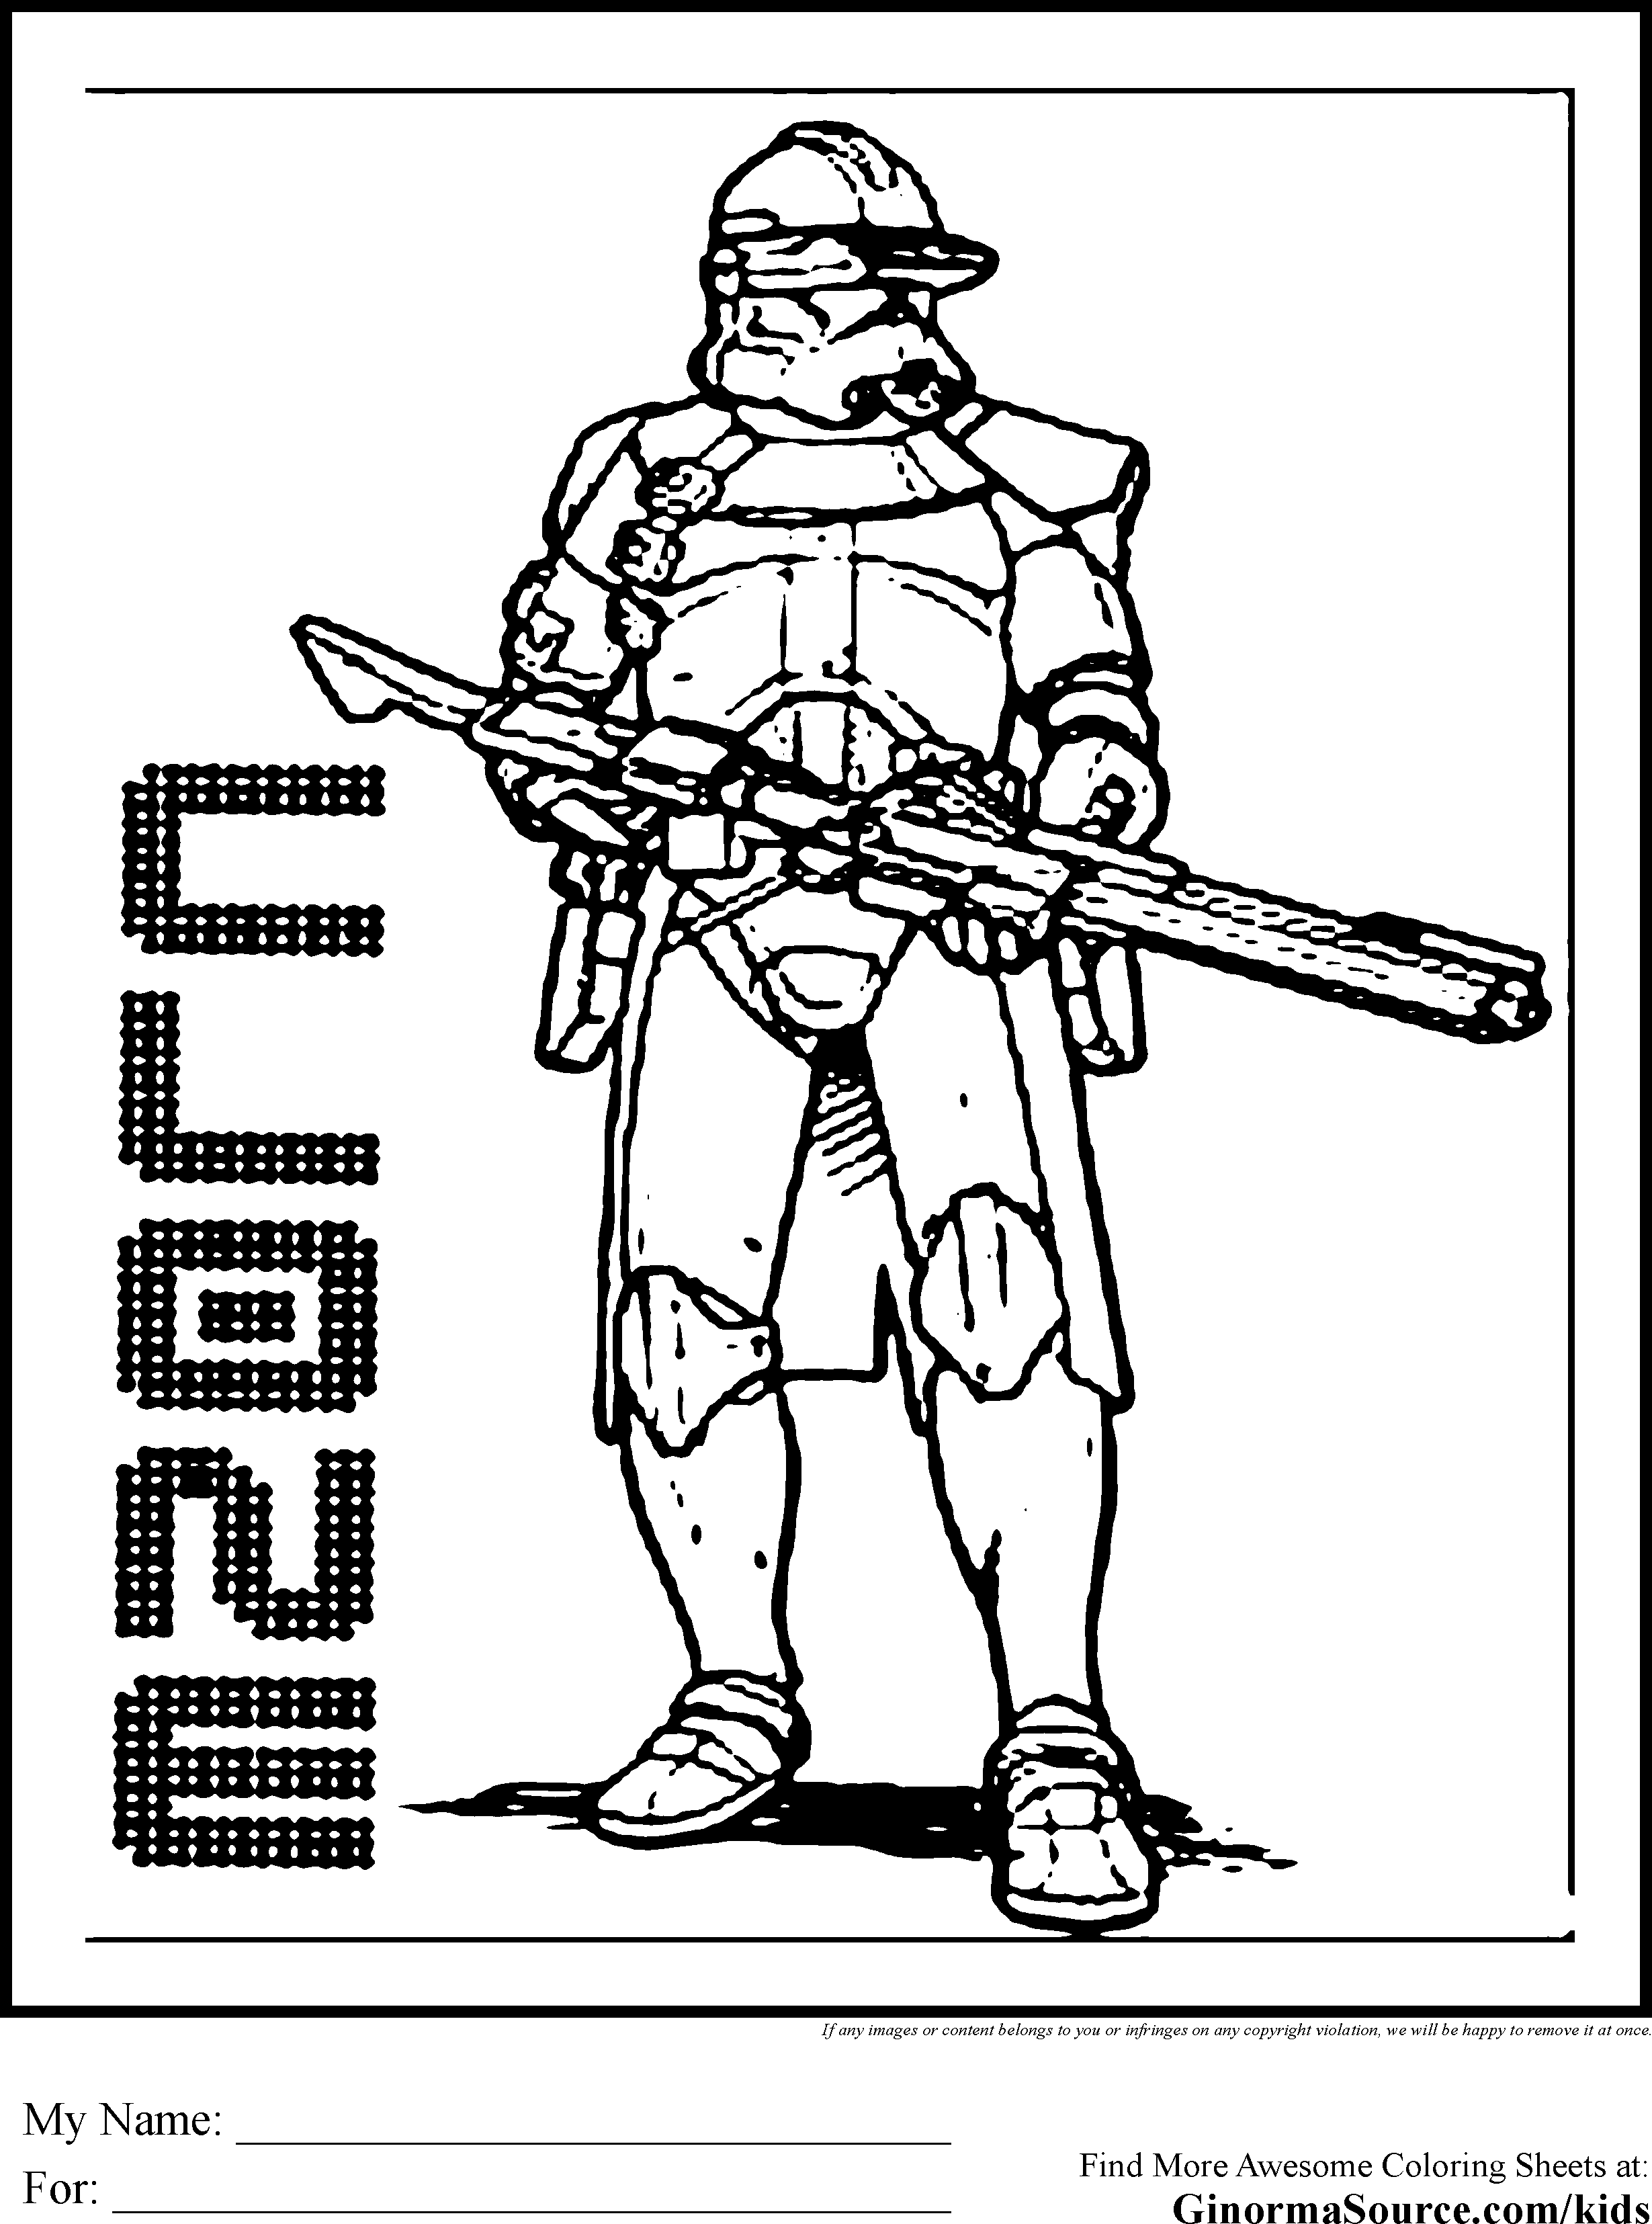 clone war coloring pages - photo#23